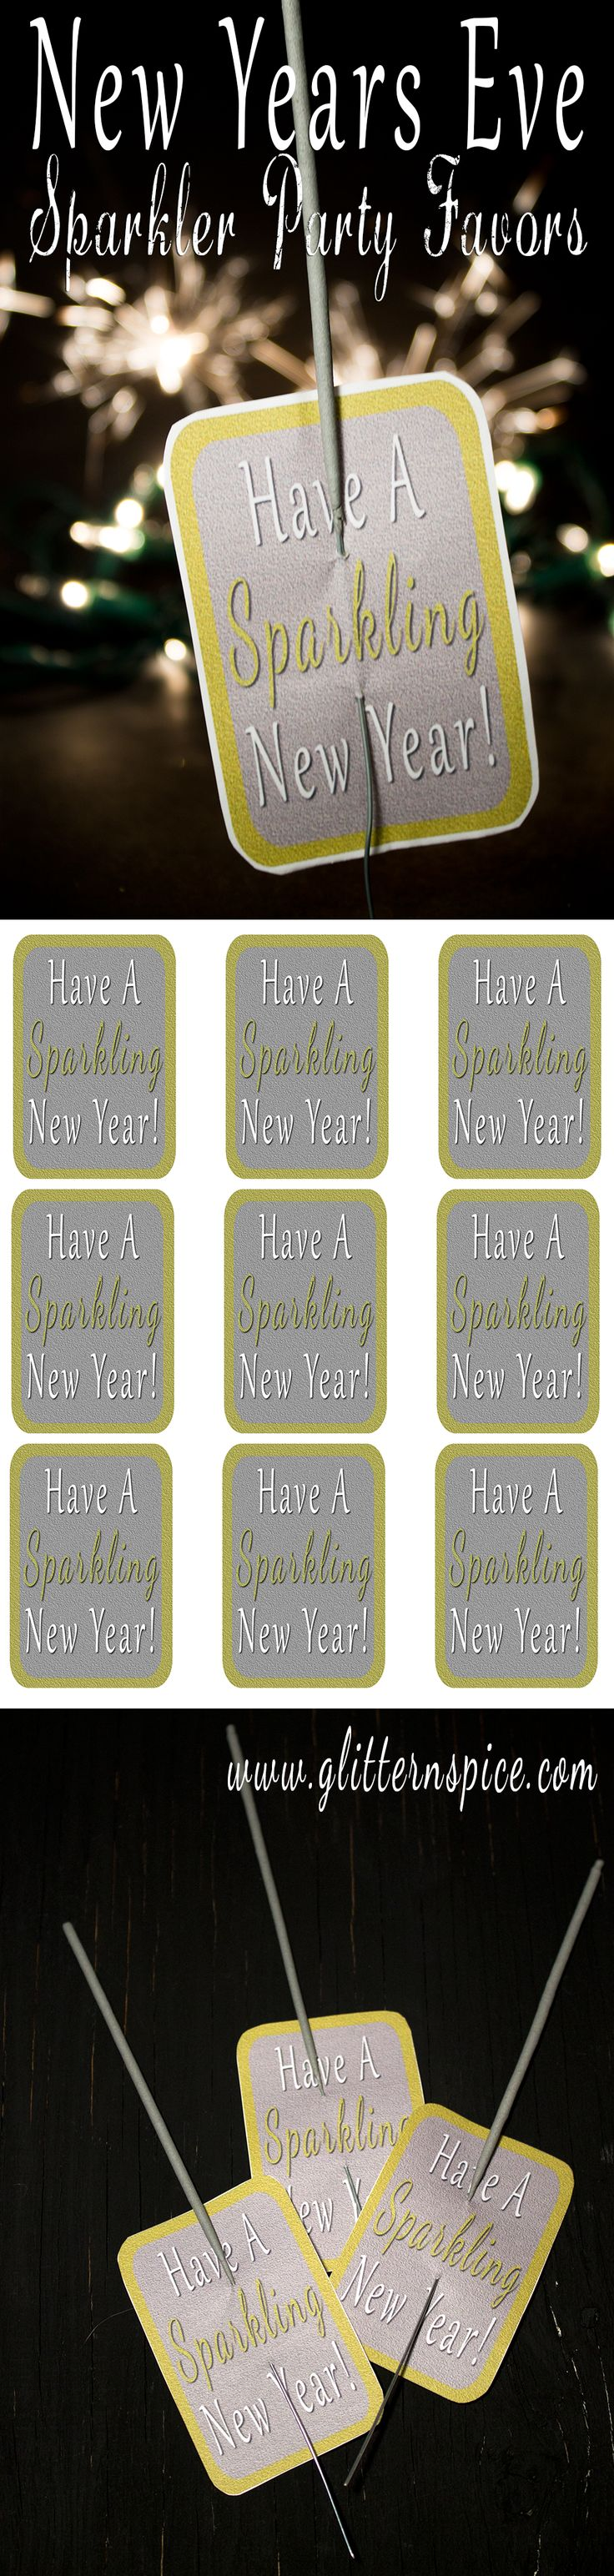 Sparkling New Years Eve Party Favors - Includes Free Printable #NewYearsEve #NewYears #printables